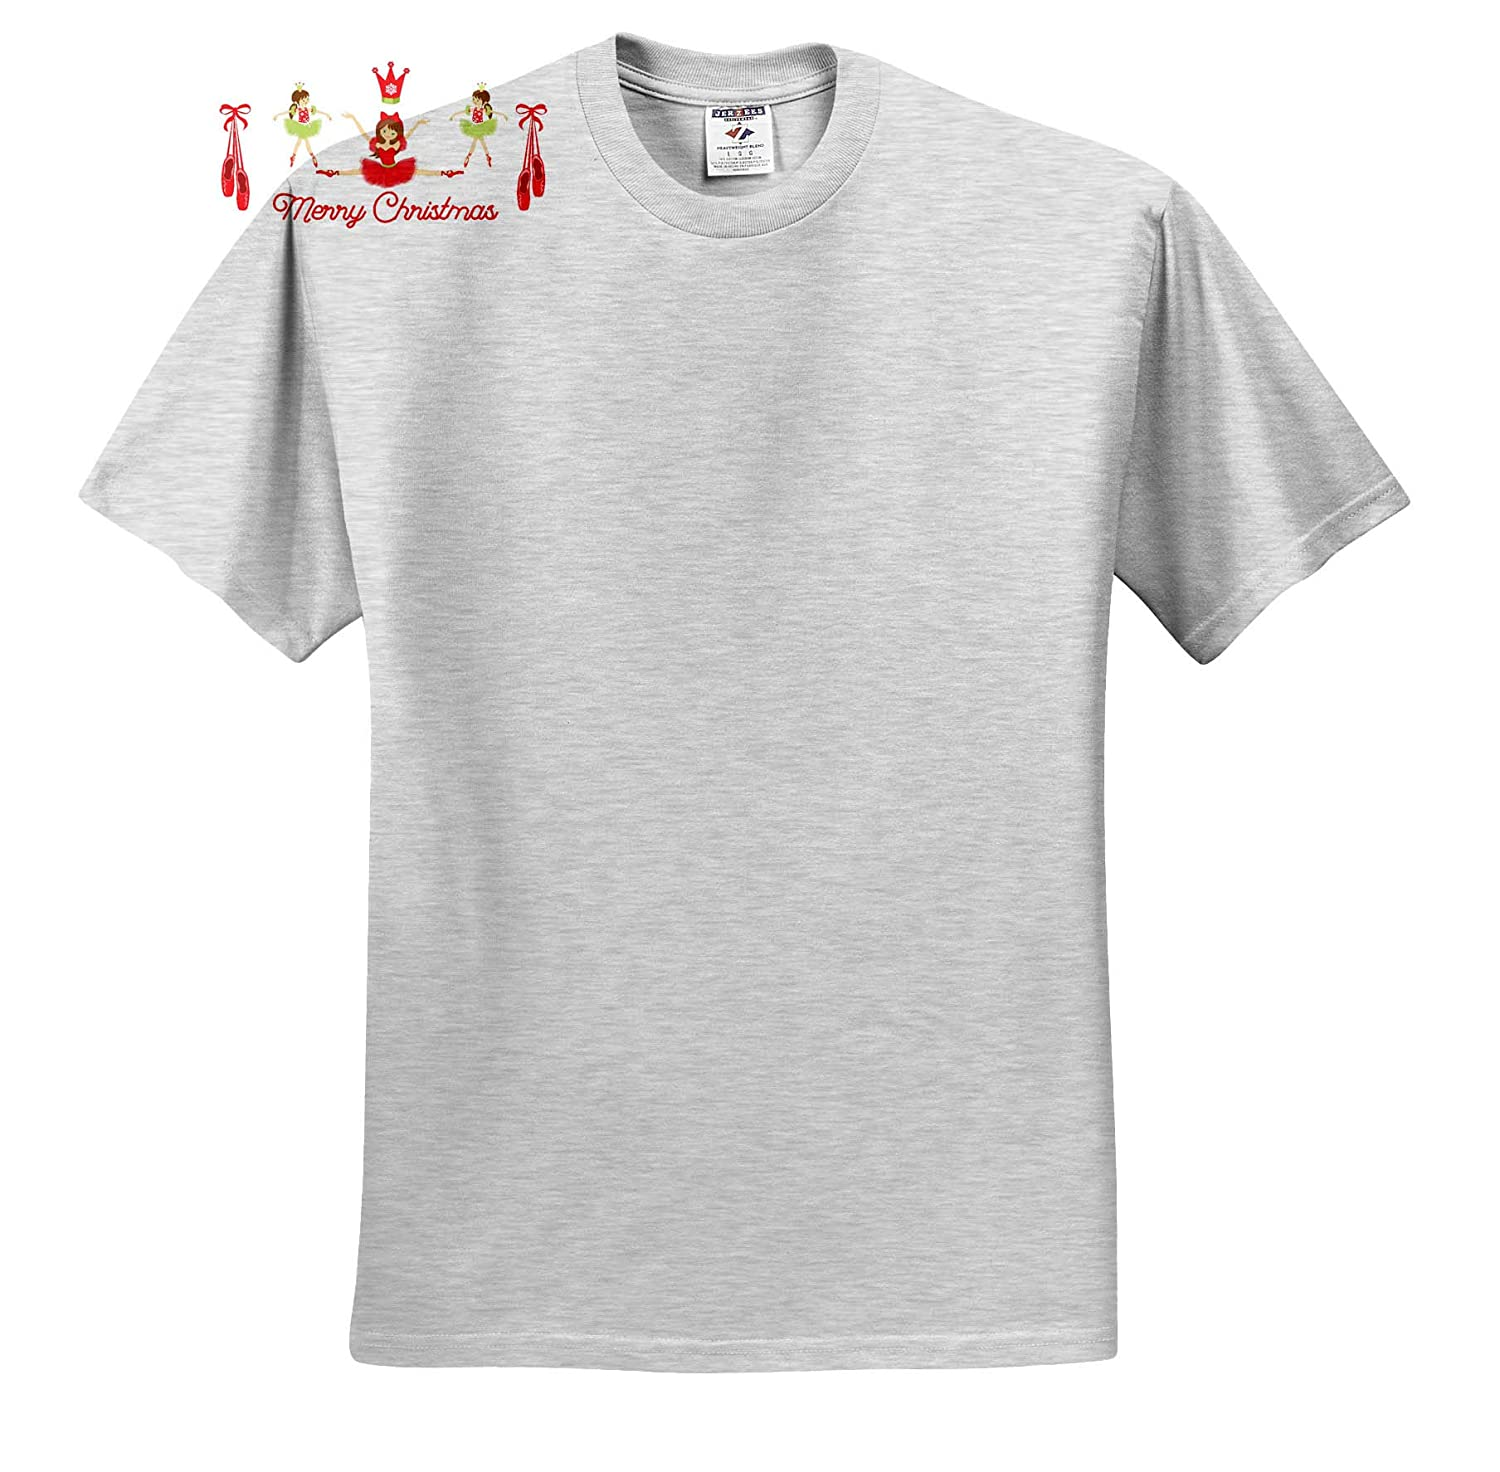 Three Ballerina Salute to Christmas in Red and Green T-Shirts 3dRose TNMGraphics Christmas